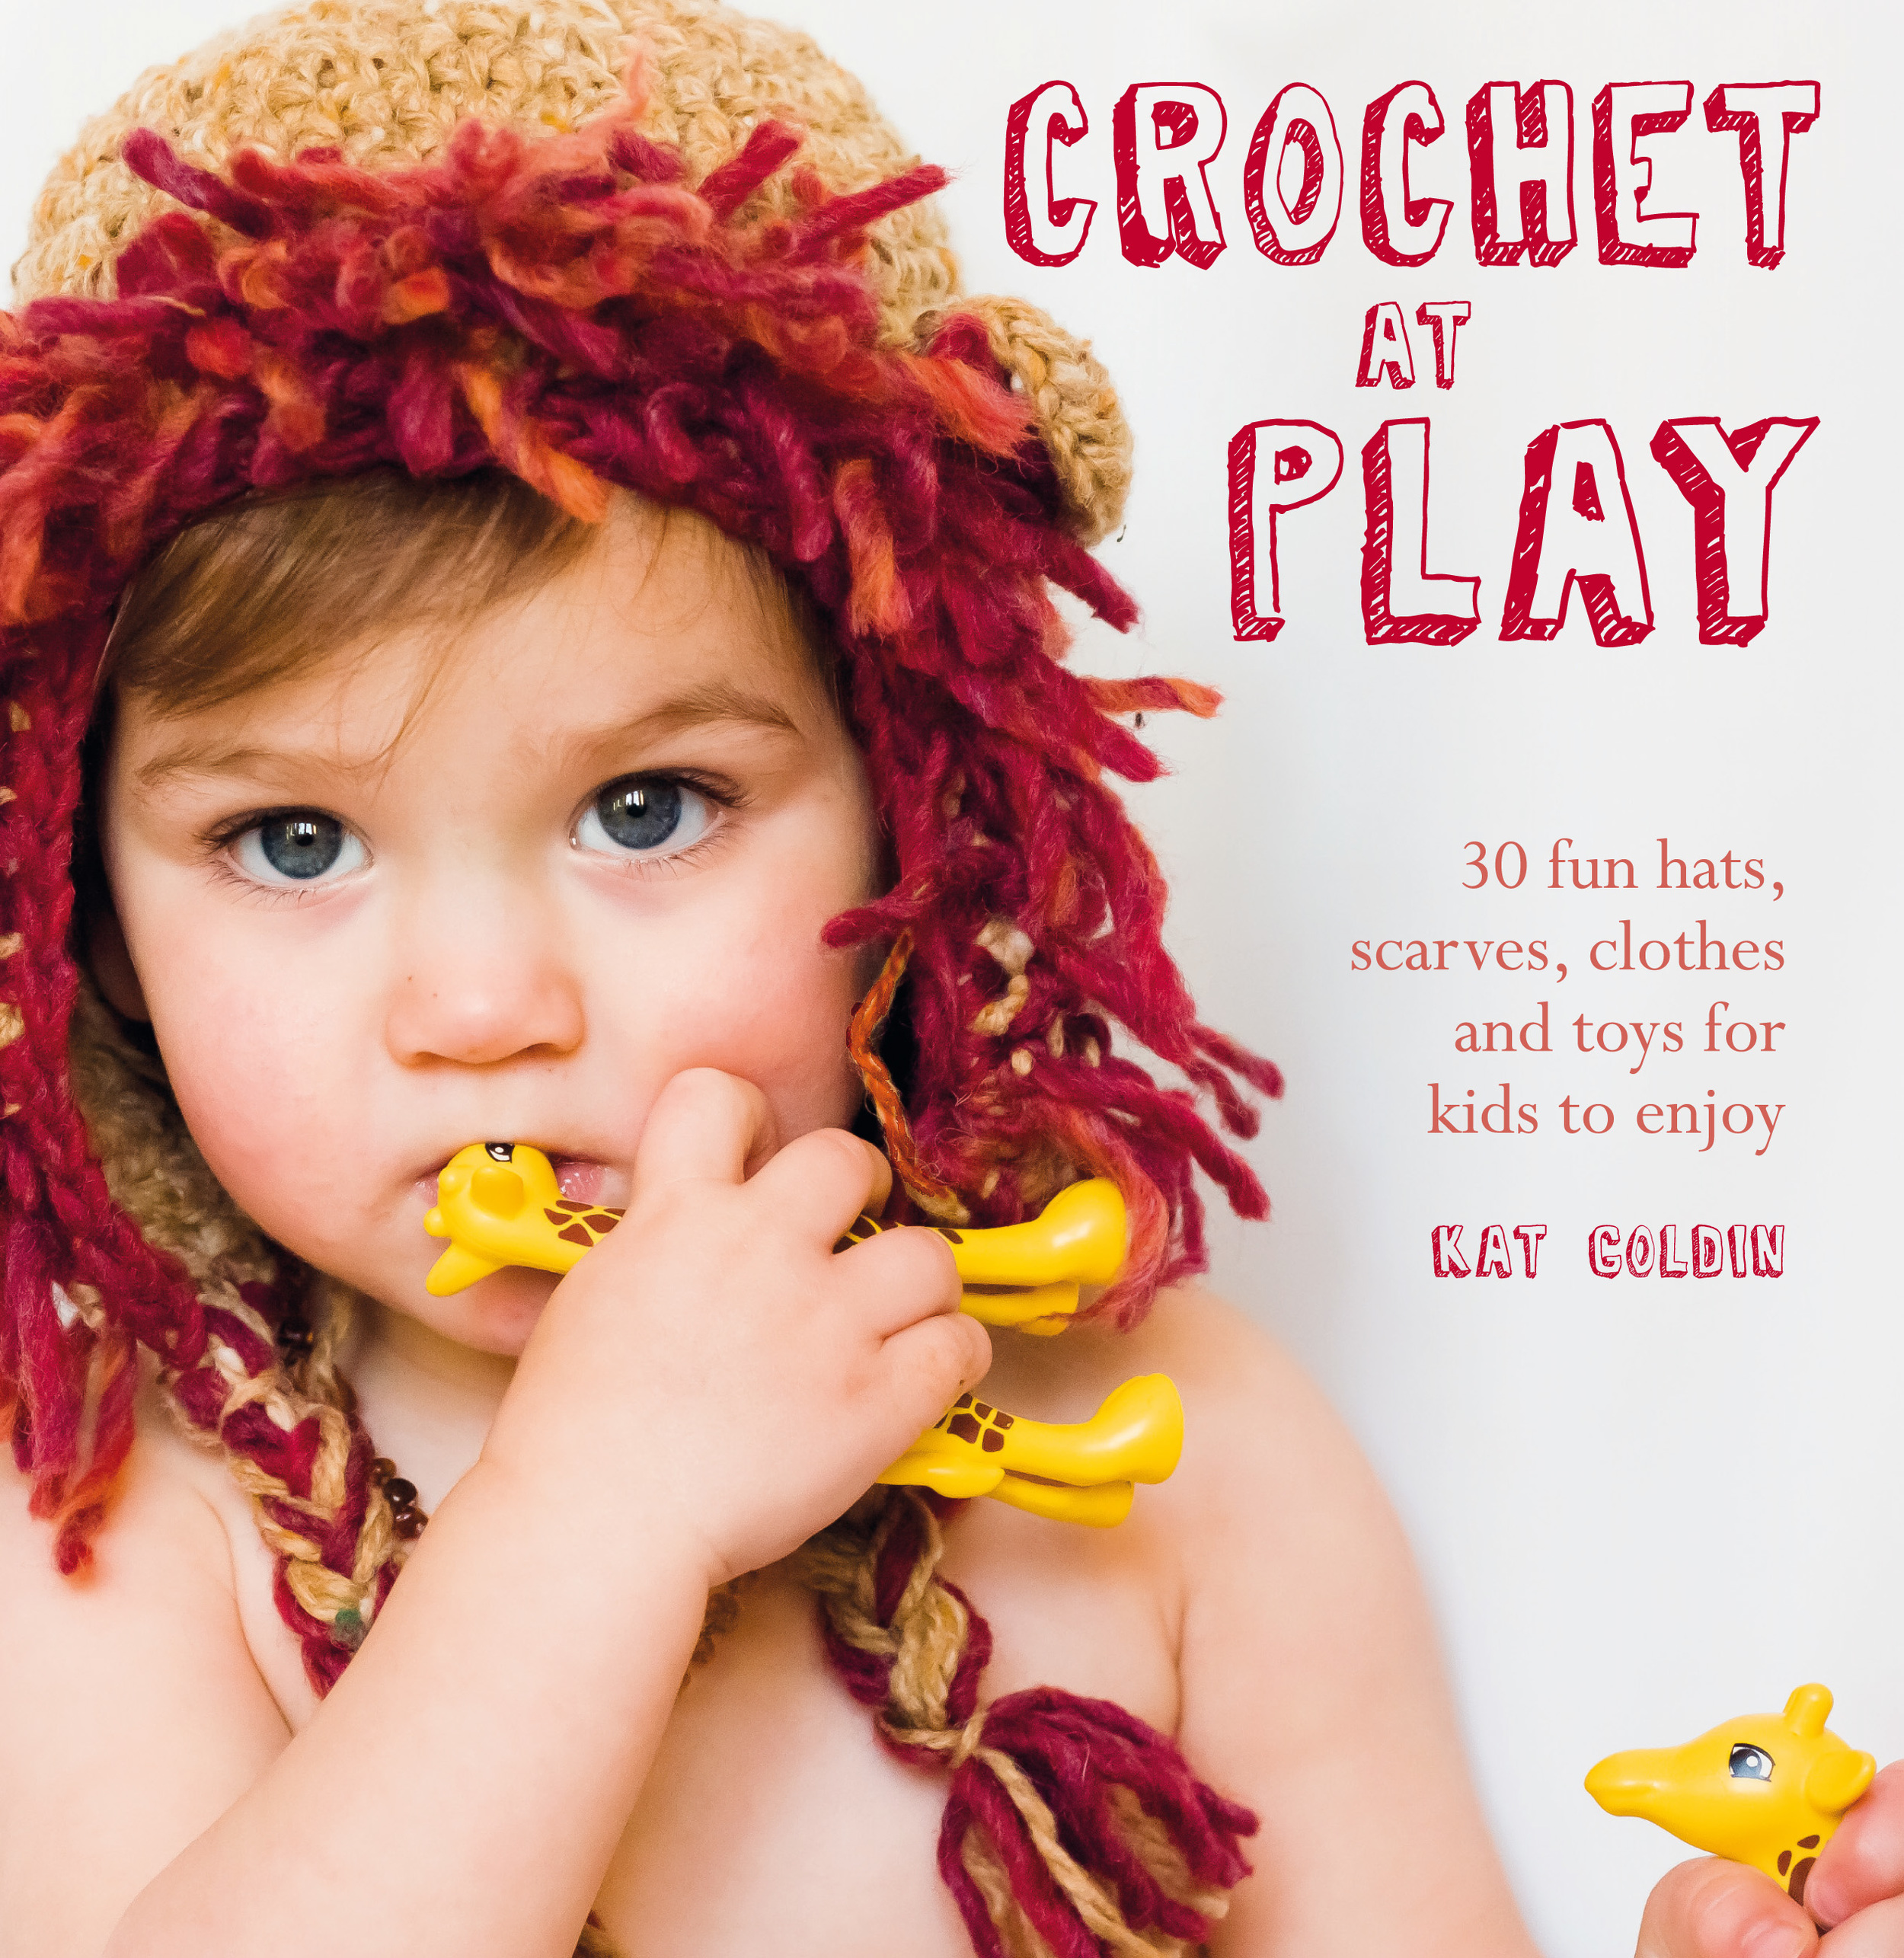 Crochet at Play front cover